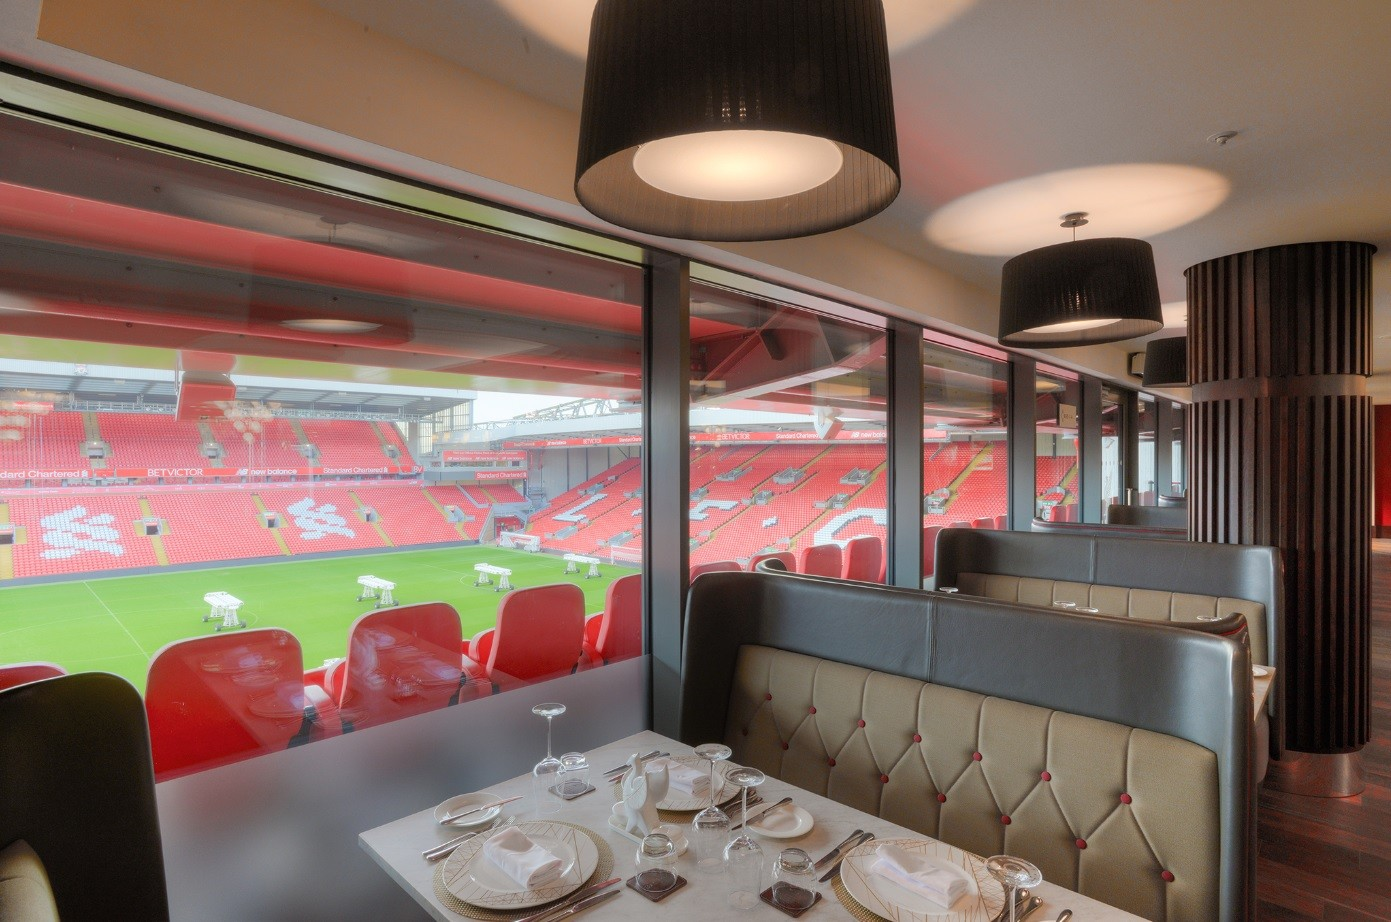 Anfield Stadium Vip Lounges Interiors And Exhibitions